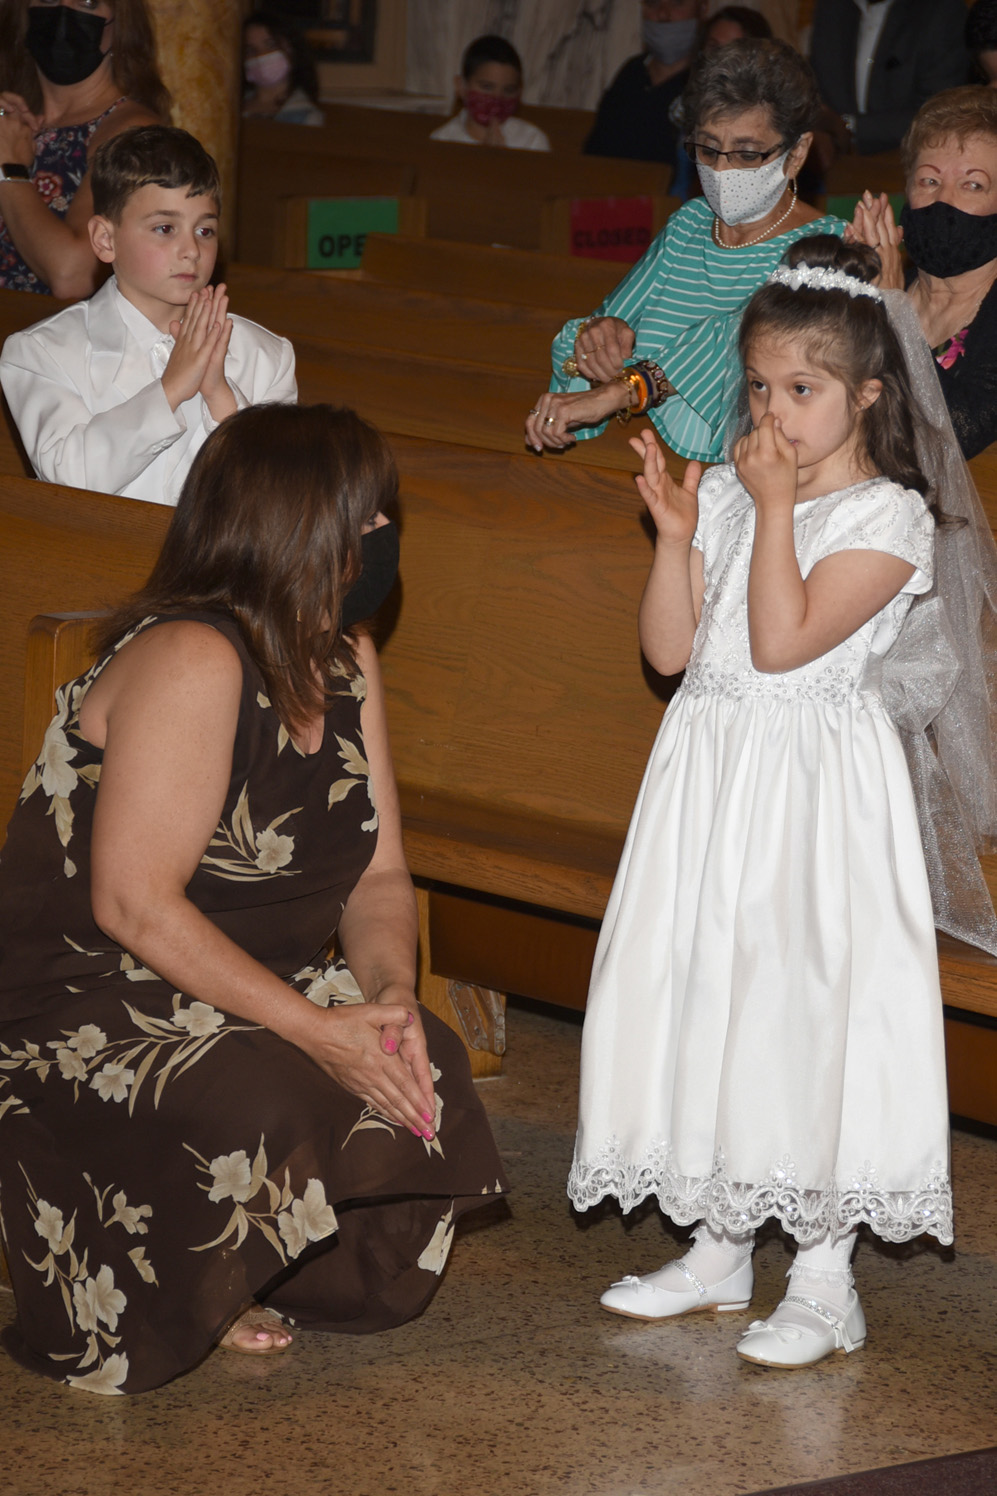 FIRST-COMMUNION-MAY-2-2021-1001001236